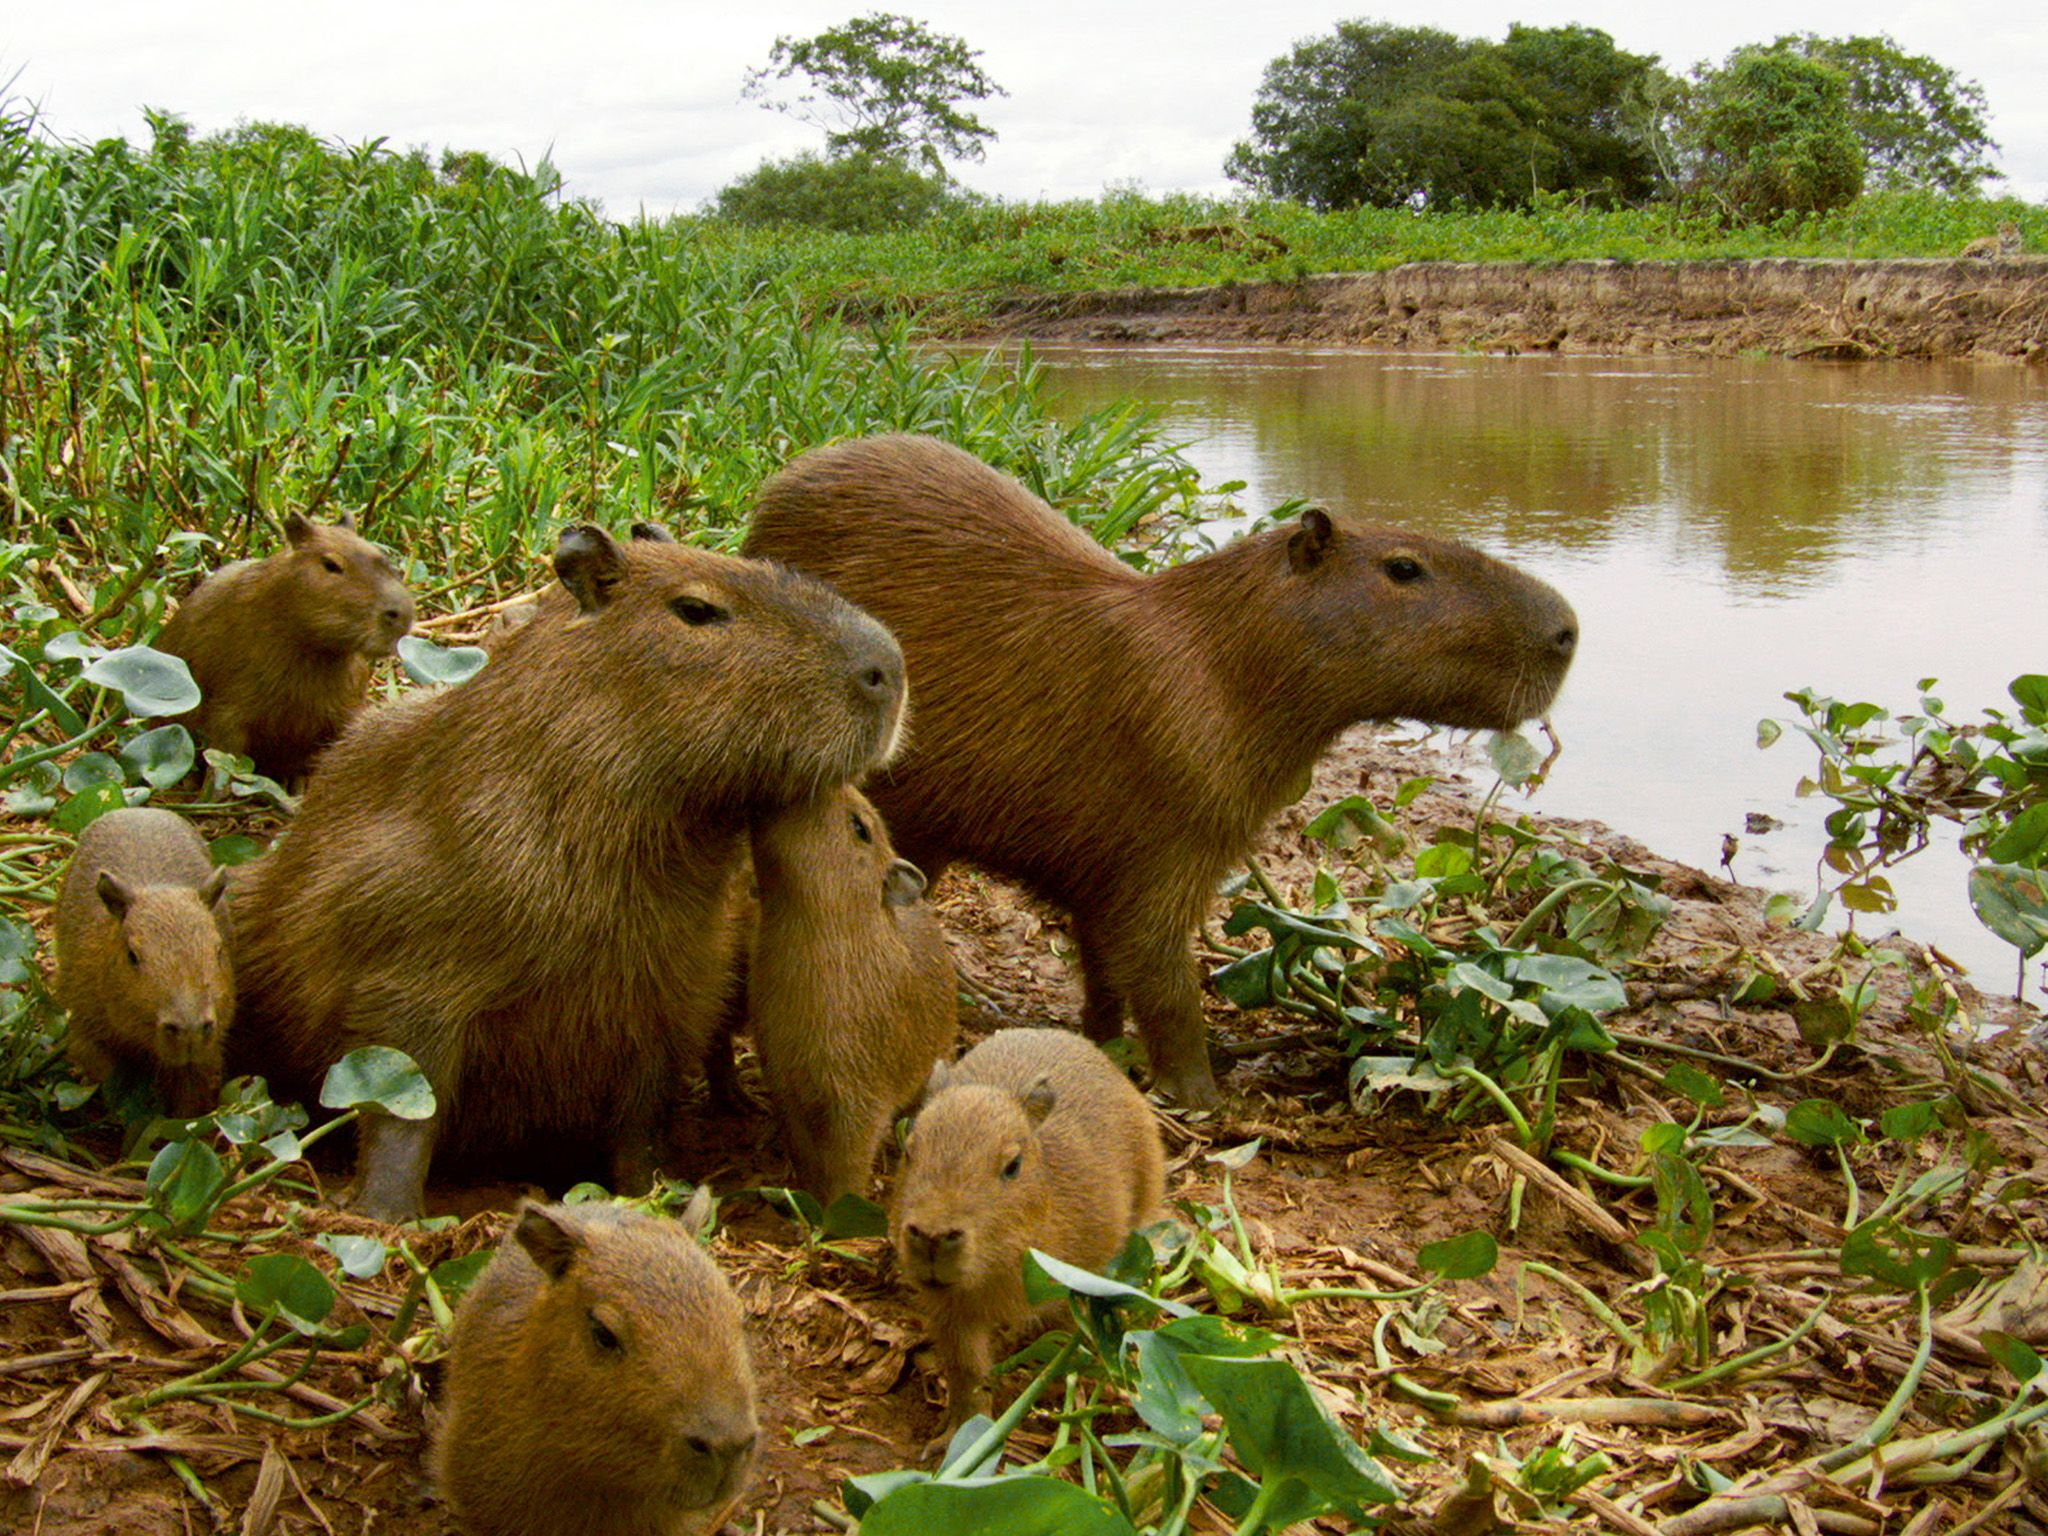 Pantanal, Brazil: Capybara (Hydrochoerus hydrochaeris) two adults with five young. This image is ... [Photo of the day - February 2015]